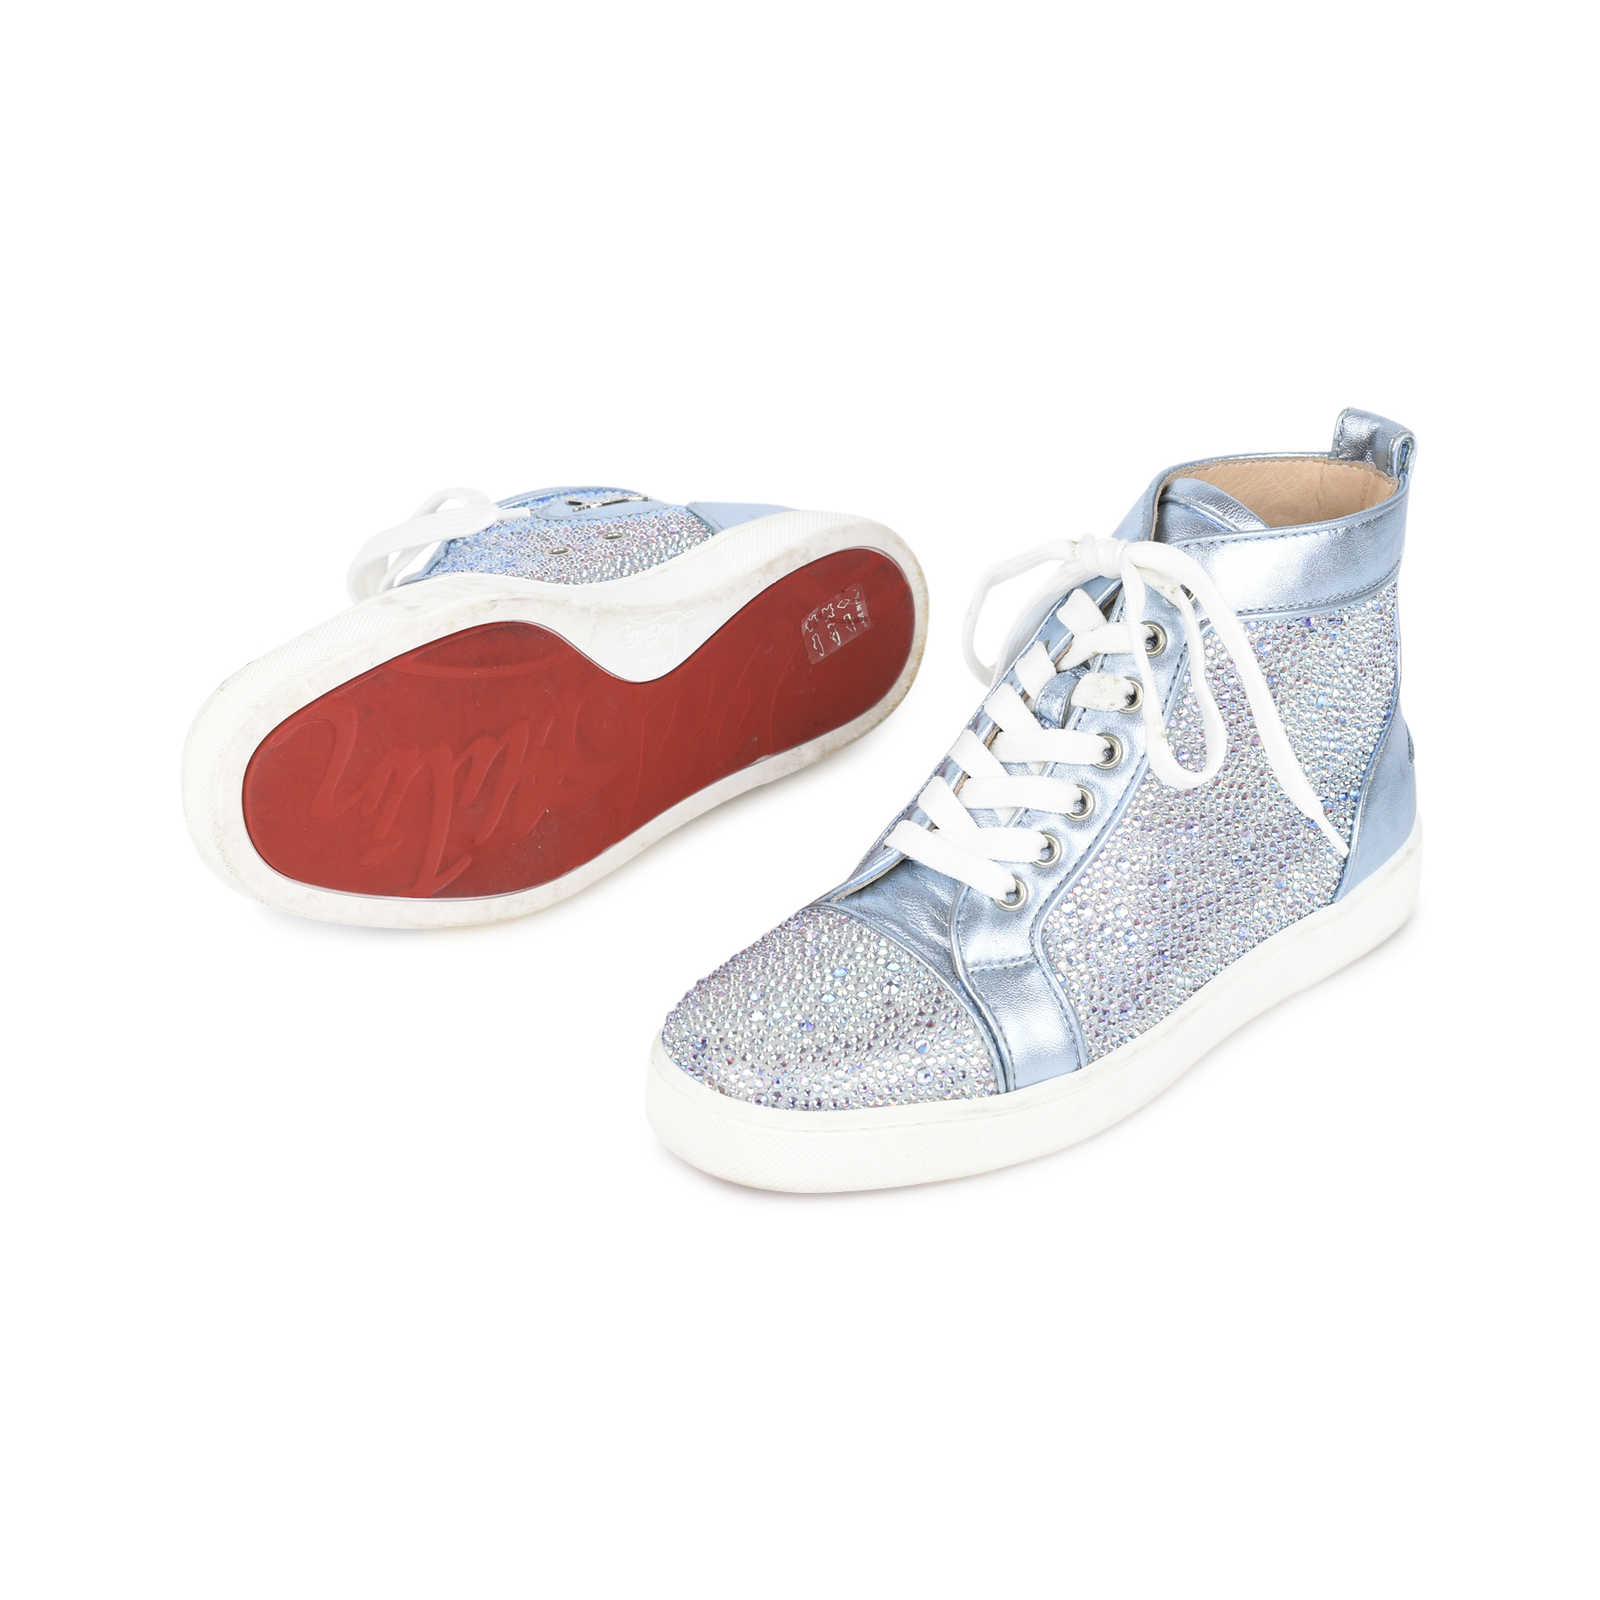 73a19cc6ab13 ... Authentic Second Hand Christian Louboutin Louis Strass Flat Sneakers  (PSS-200-01116) ...